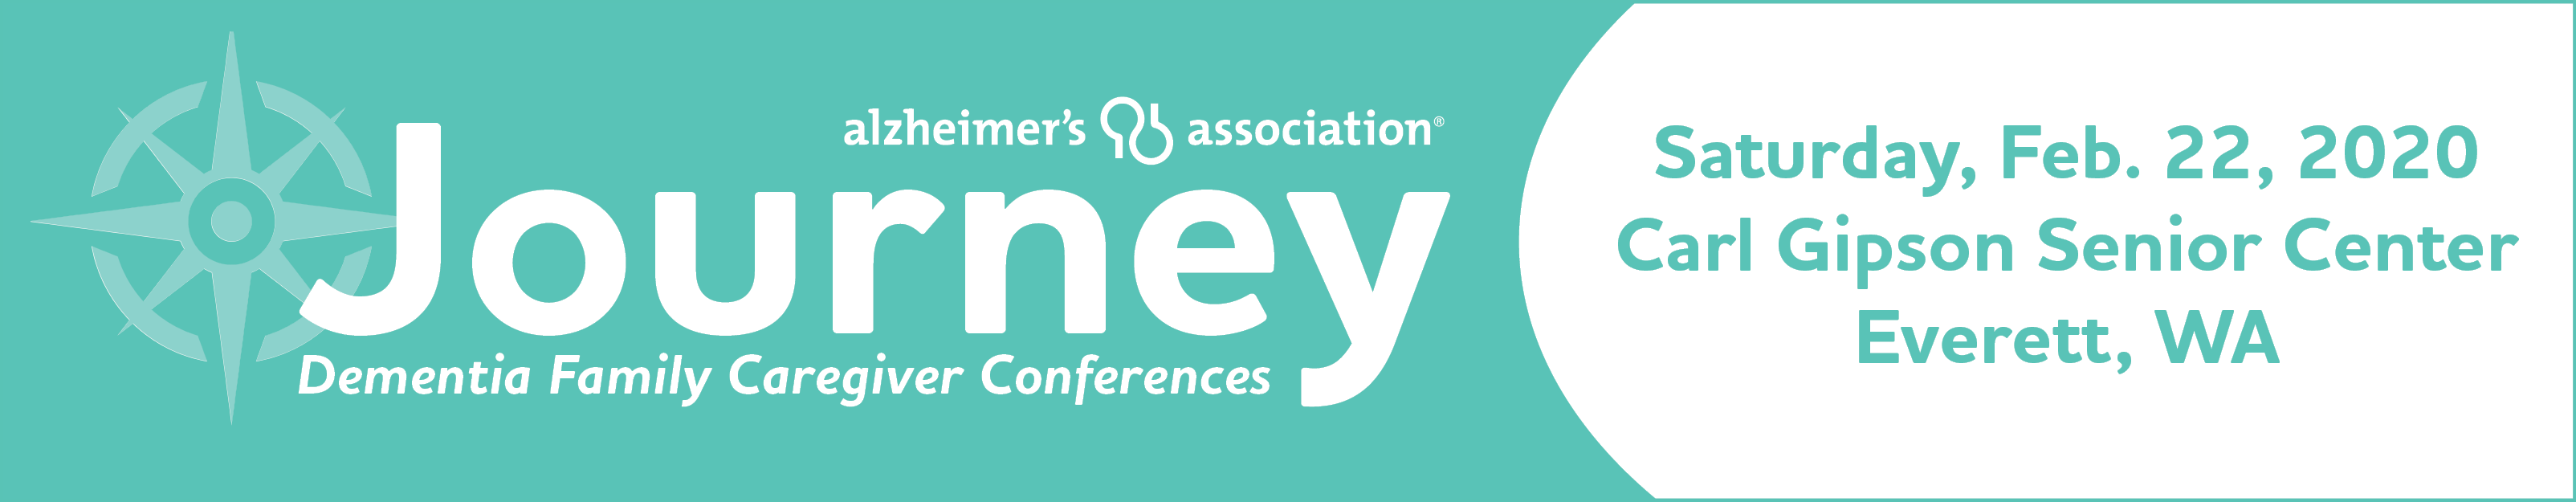 Journey Dementia Family Caregiver Conference - Everett - Feb. 22, 2020